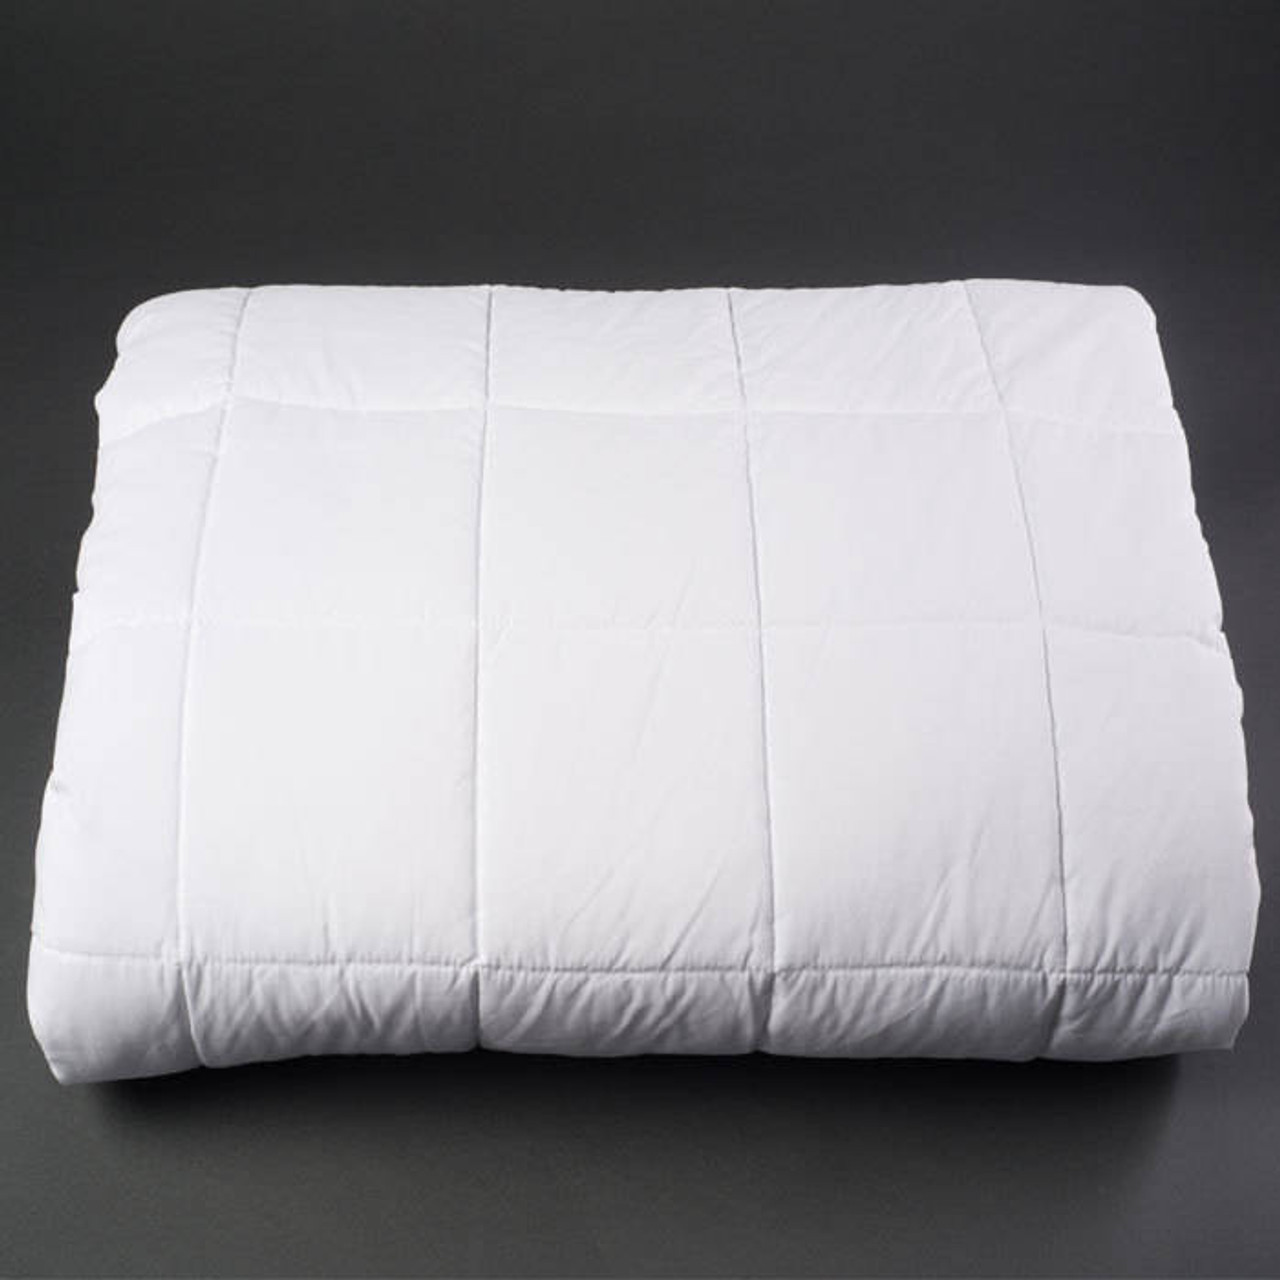 Martex Ultra Touch MARTEX ULTRA TOUCH MICROFIBER DOWN ALTERNATIVE COMFORTERS or WHITE